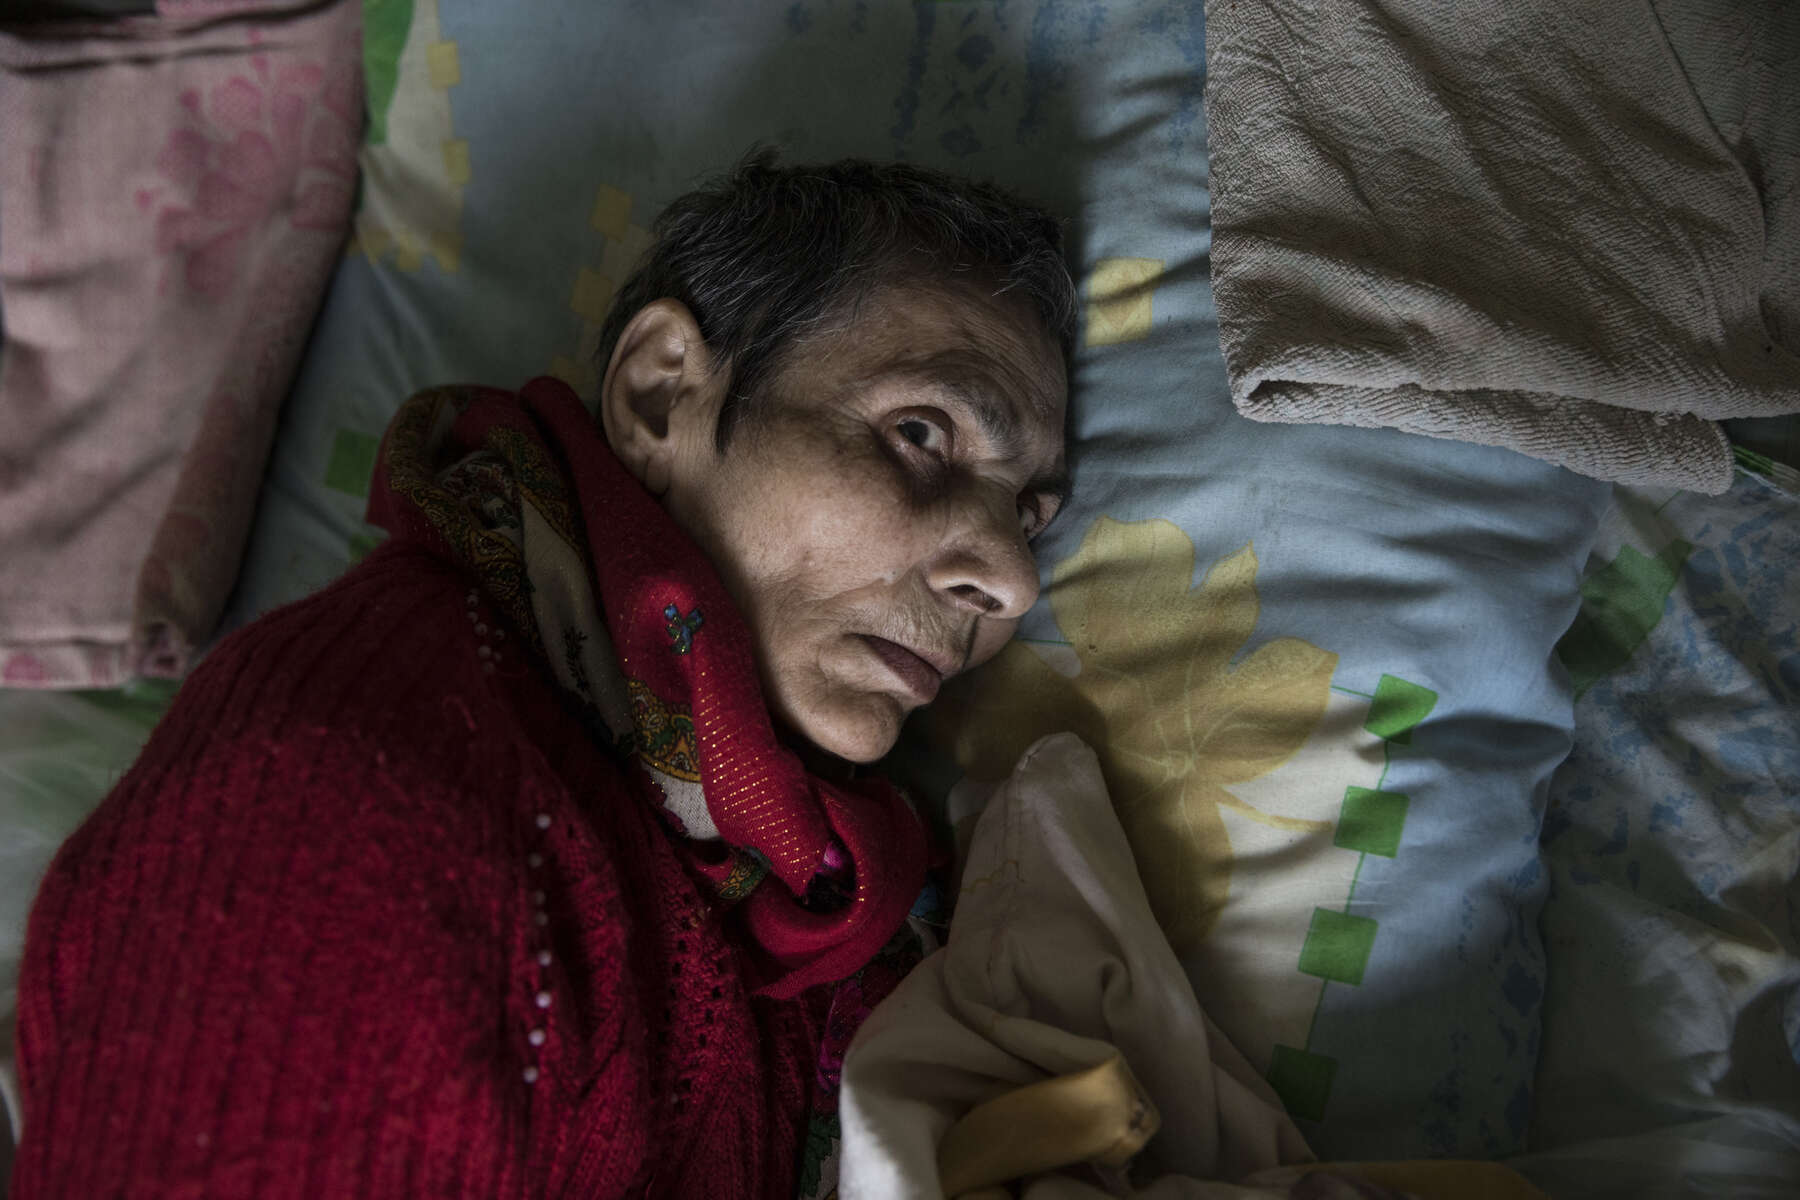 Vera Cherepovskaya, age 65, rests at the Druzhkovka nursing home, has severe dementia, a social worker brought her to the home, she was abandoned by her family who fled the war-torn region. After more than four years of war the armed conflict in eastern Ukraine has a human toll that is staggering. The war has displaced more than 1.6 million with over 2,500 civilians killed and 9,000 injured. Some 200,000 people live under constant fear of shelling every day, with nearly a third of the 3.4 million people in need of humanitarian assistance over 60 years of age. Ukraine has the highest proportion of elderly affected by war in the world.